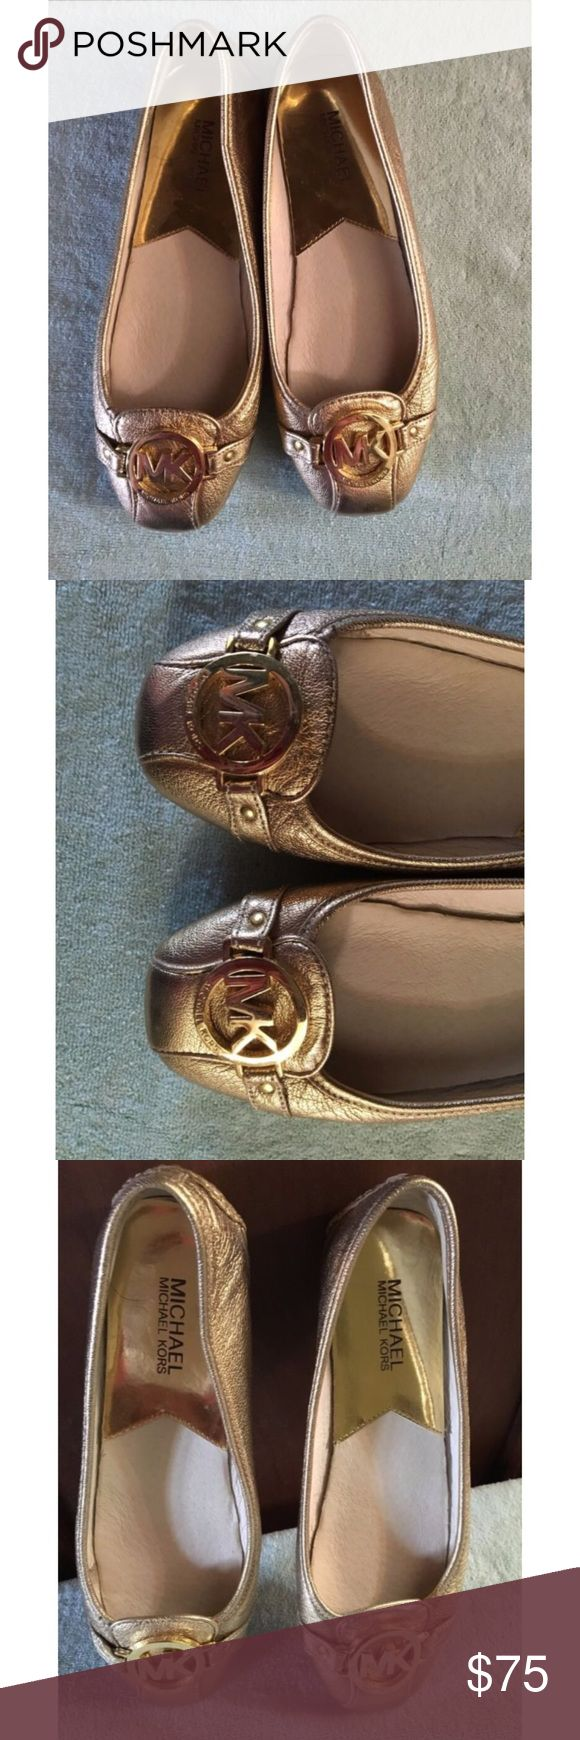 Authentic Michael Kors Gold Ballet Flats 7 1/2✨ Beautiful pair of very soft gold leather ballet flats by Michael Kors with metal MK logo on front of flats. Very clean condition and no visible signs of wear or defects. Non-smoking home. Inside of shoe is perfect. No wear on soles. Size 7.5! ✨ Michael Kors Shoes Flats & Loafers